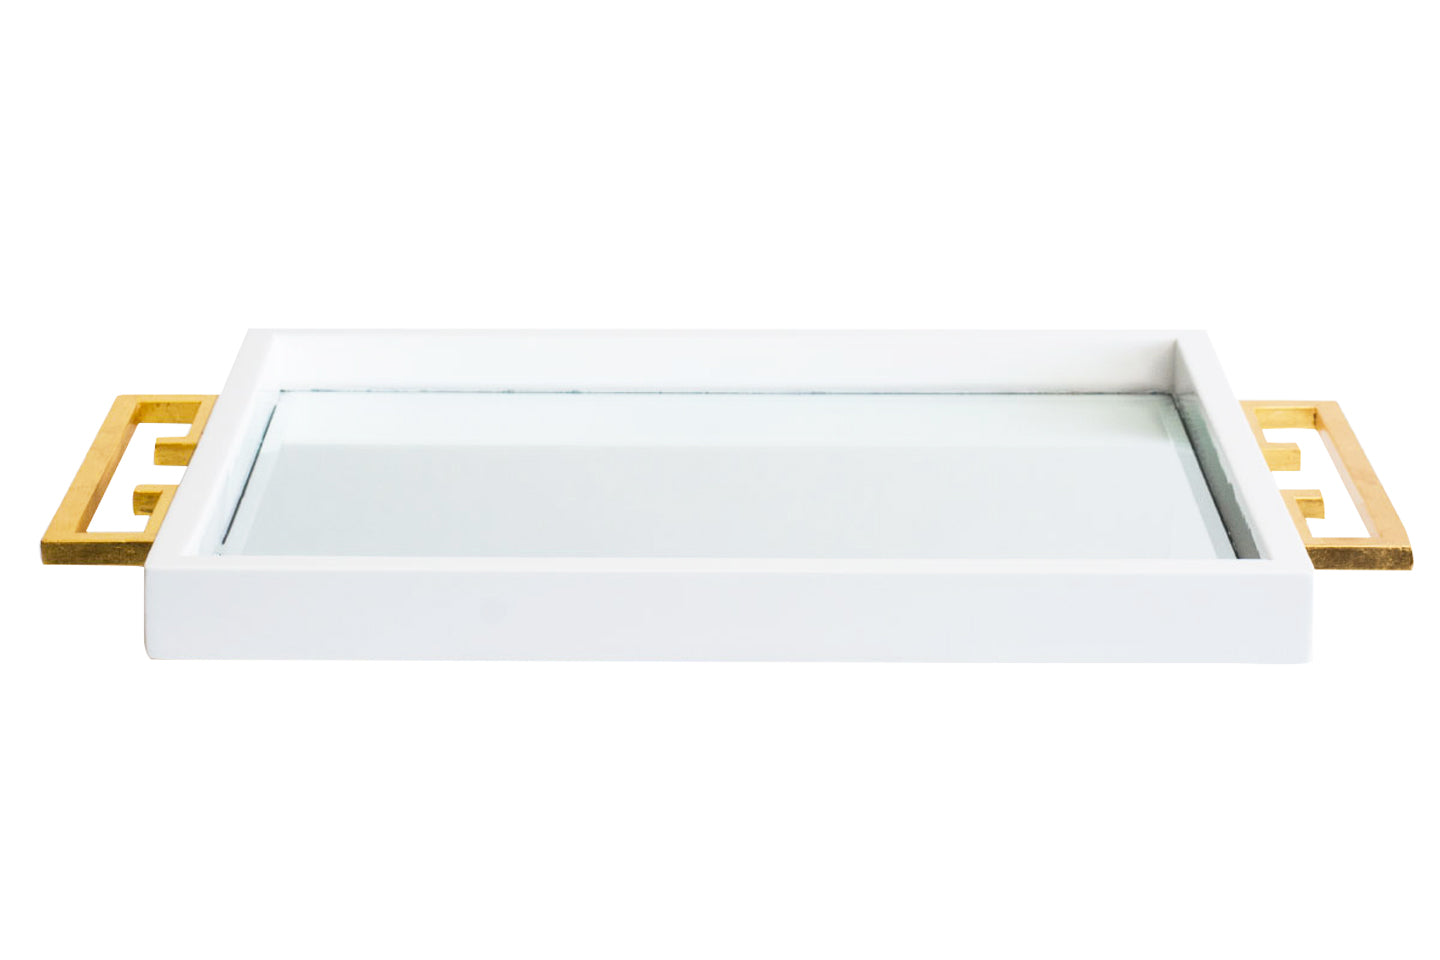 Avondale Tray in White design by Couture Lamps